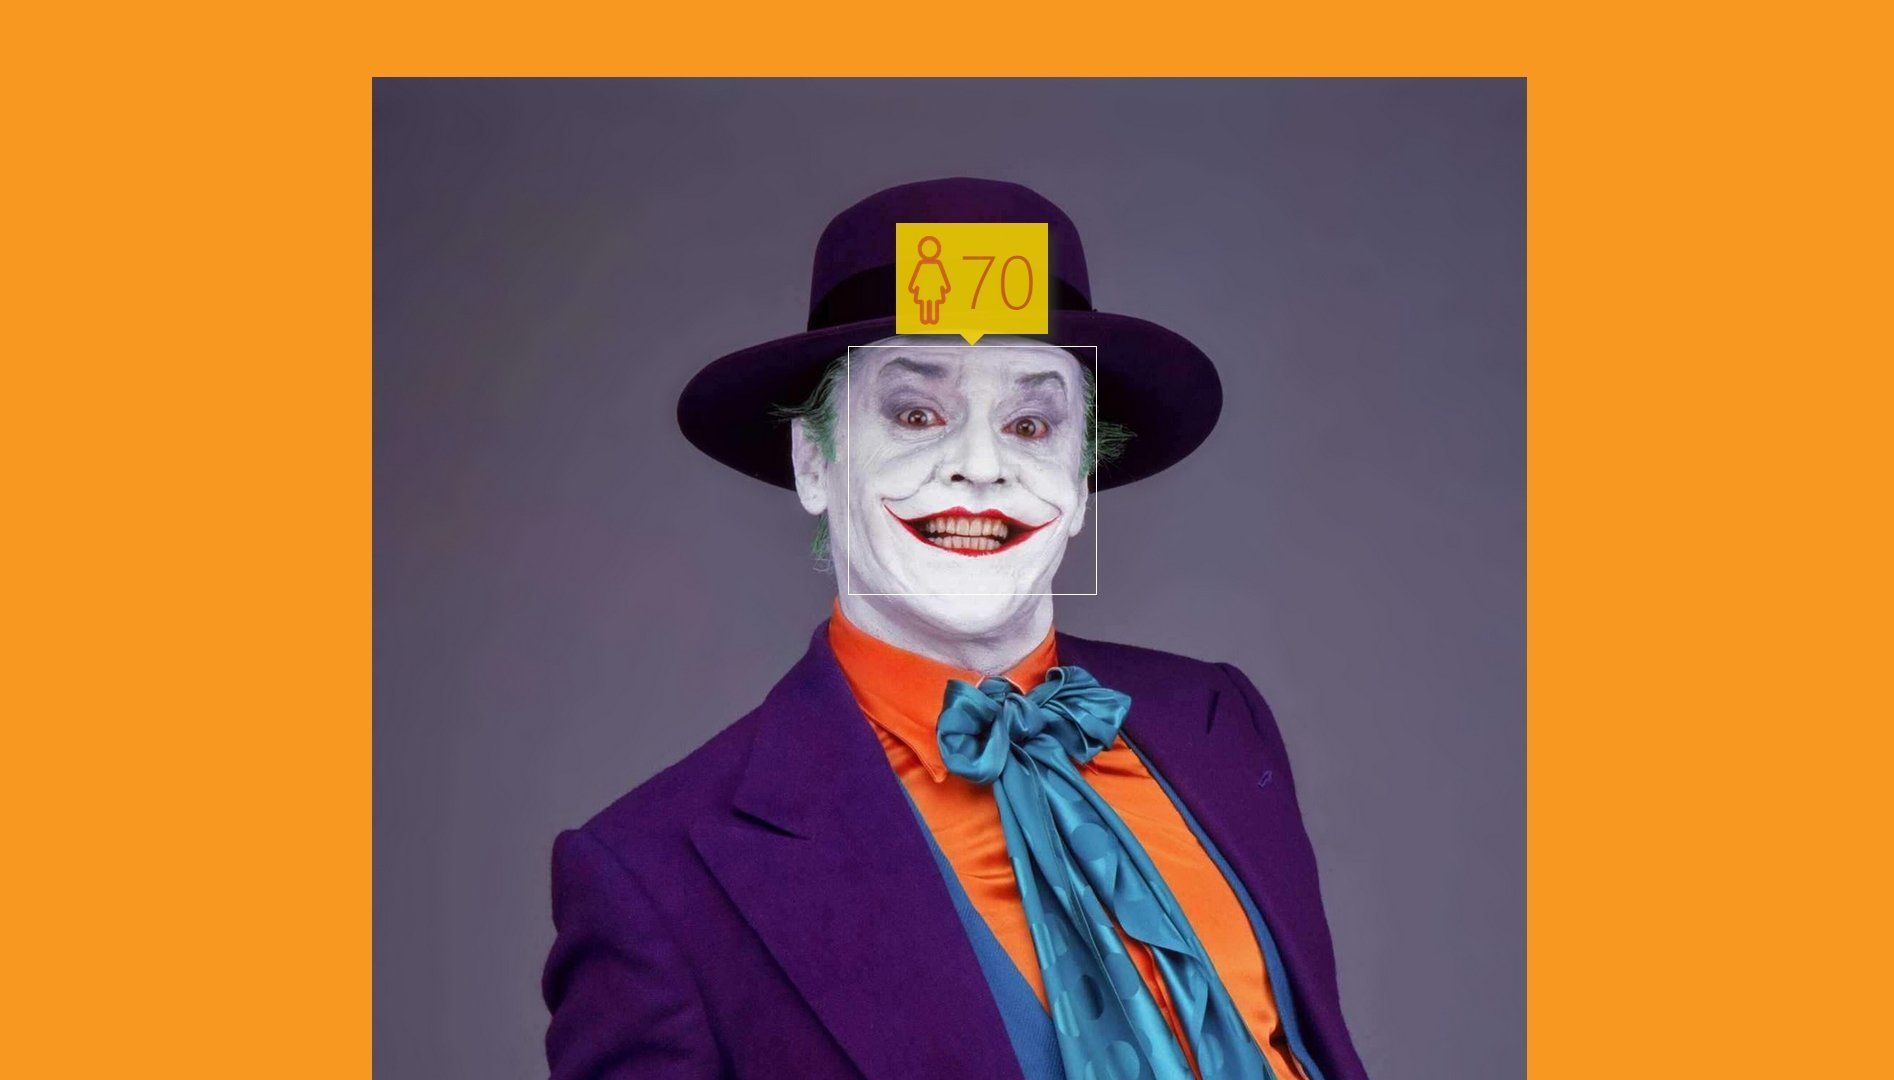 Jack Nicholson joker age microsoft how old